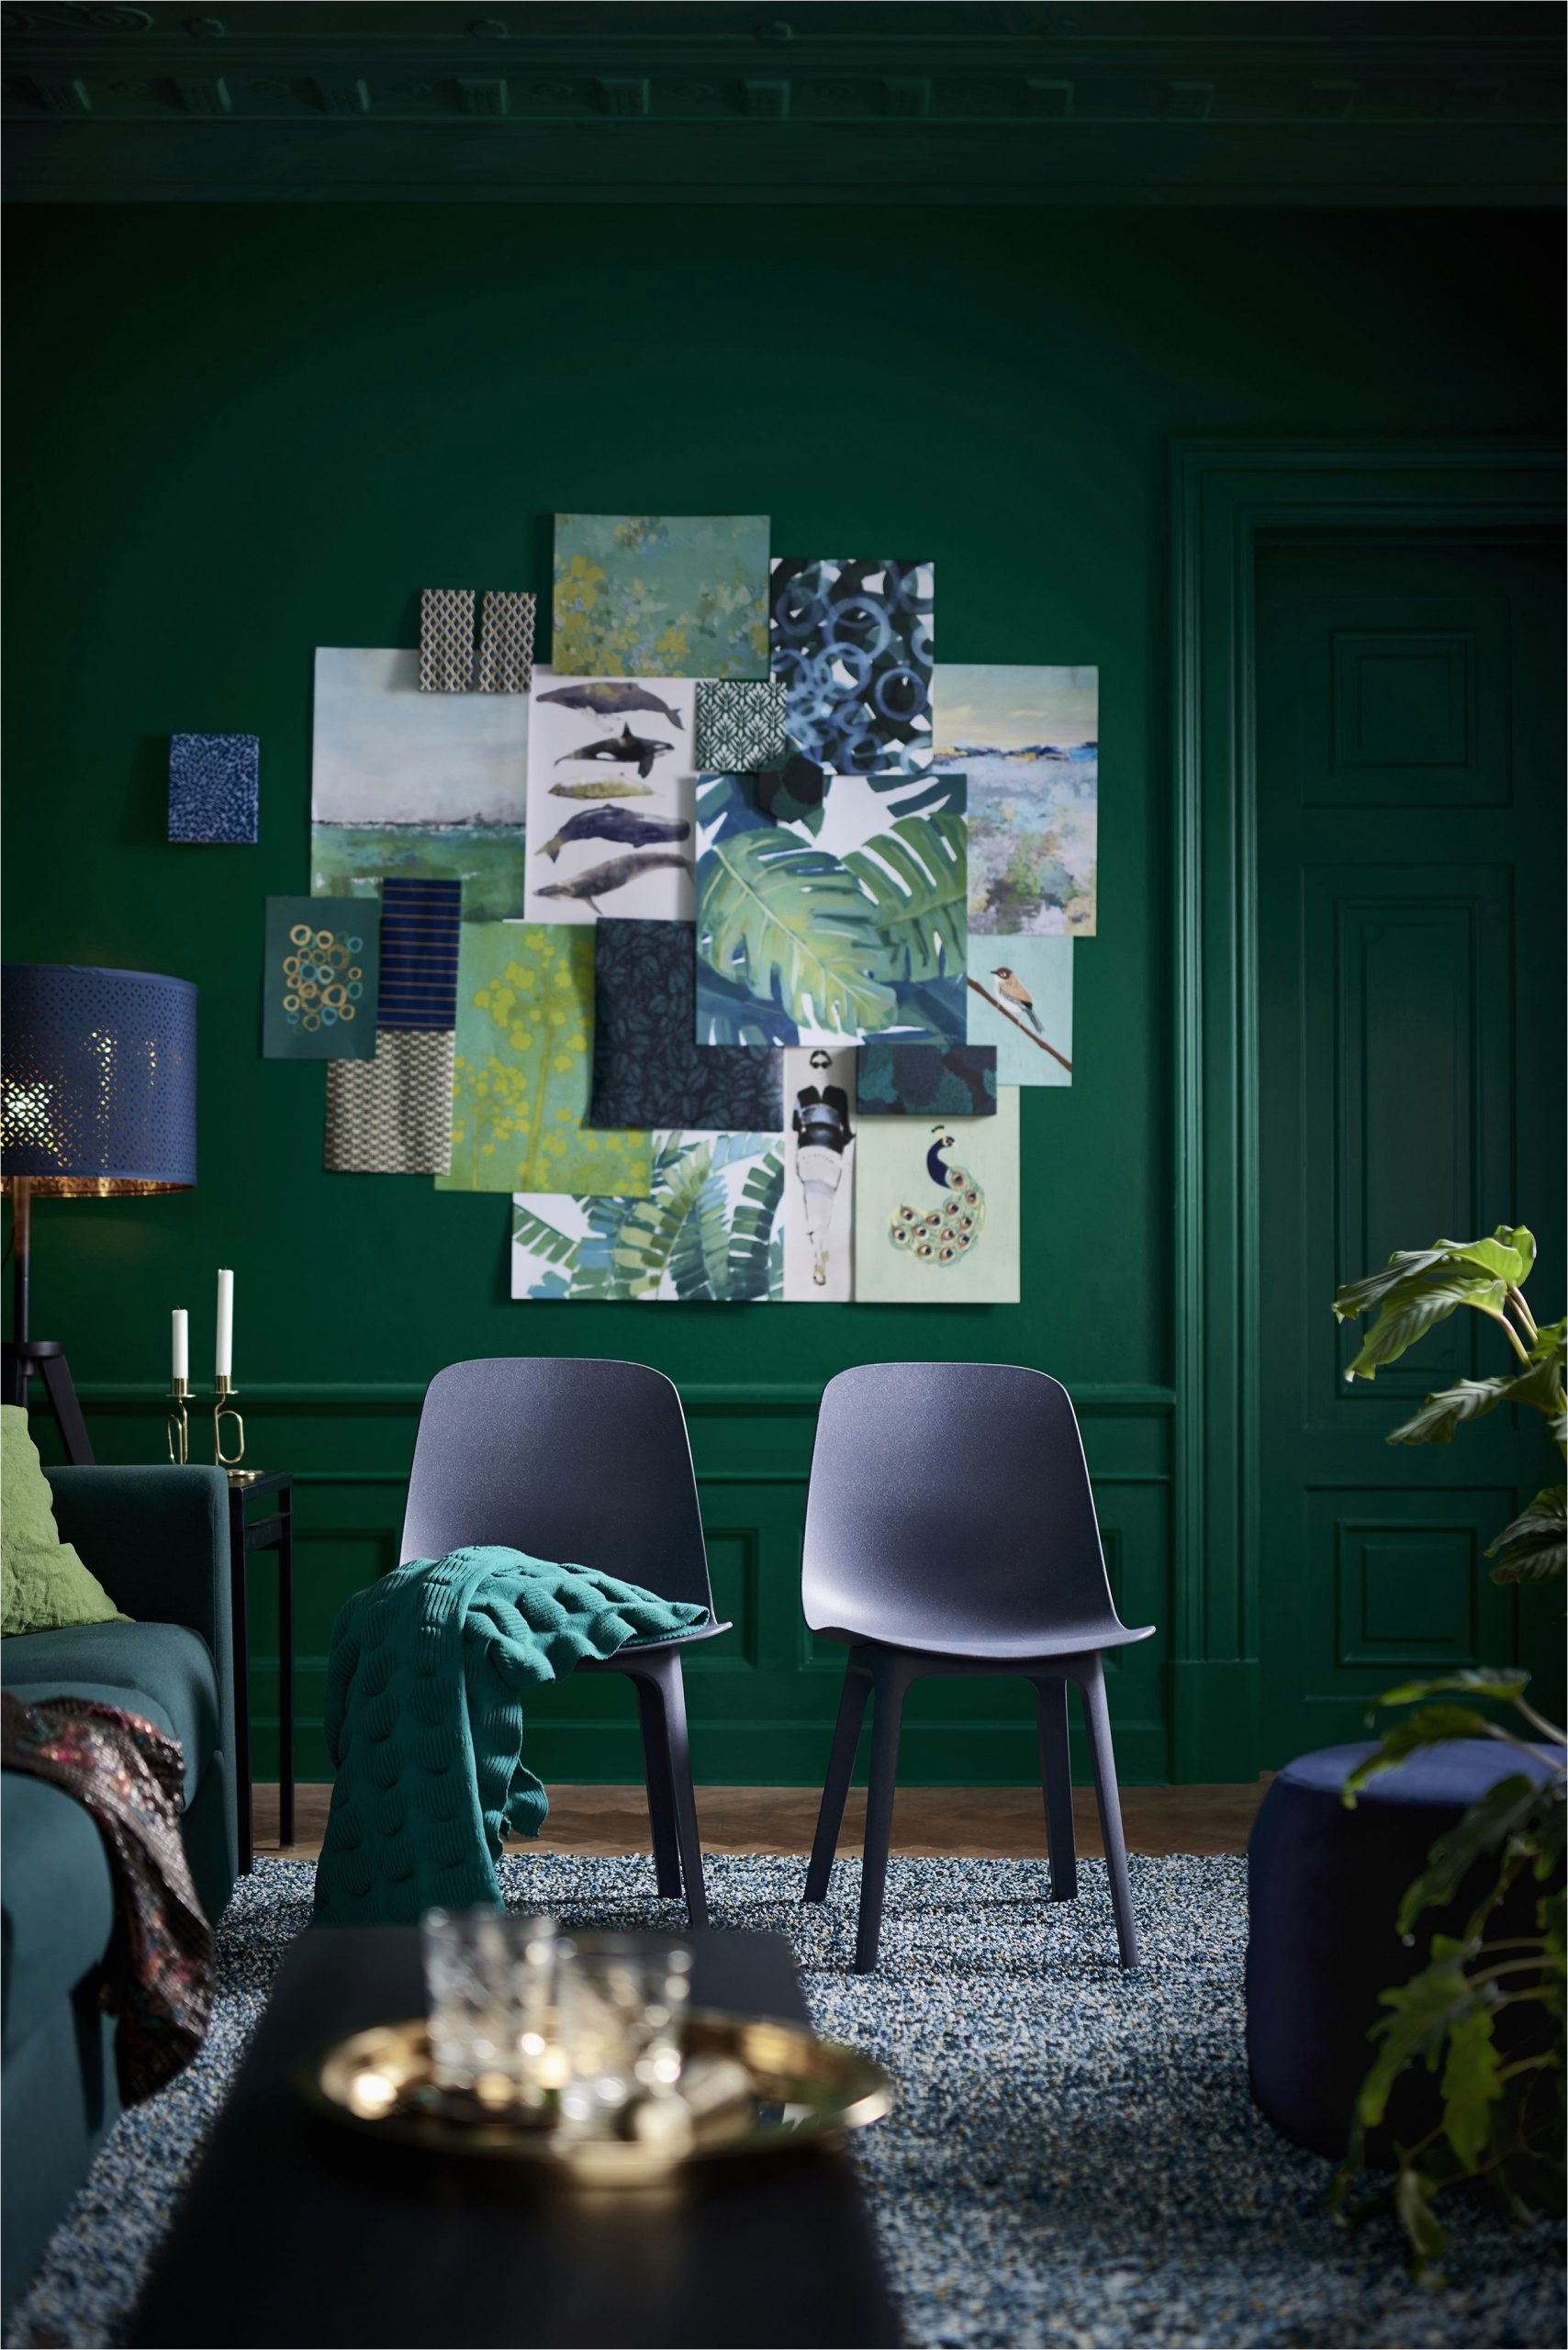 Ikea Vindum Rug Blue Green New From Ikea Everything thats Dropping In August 2017